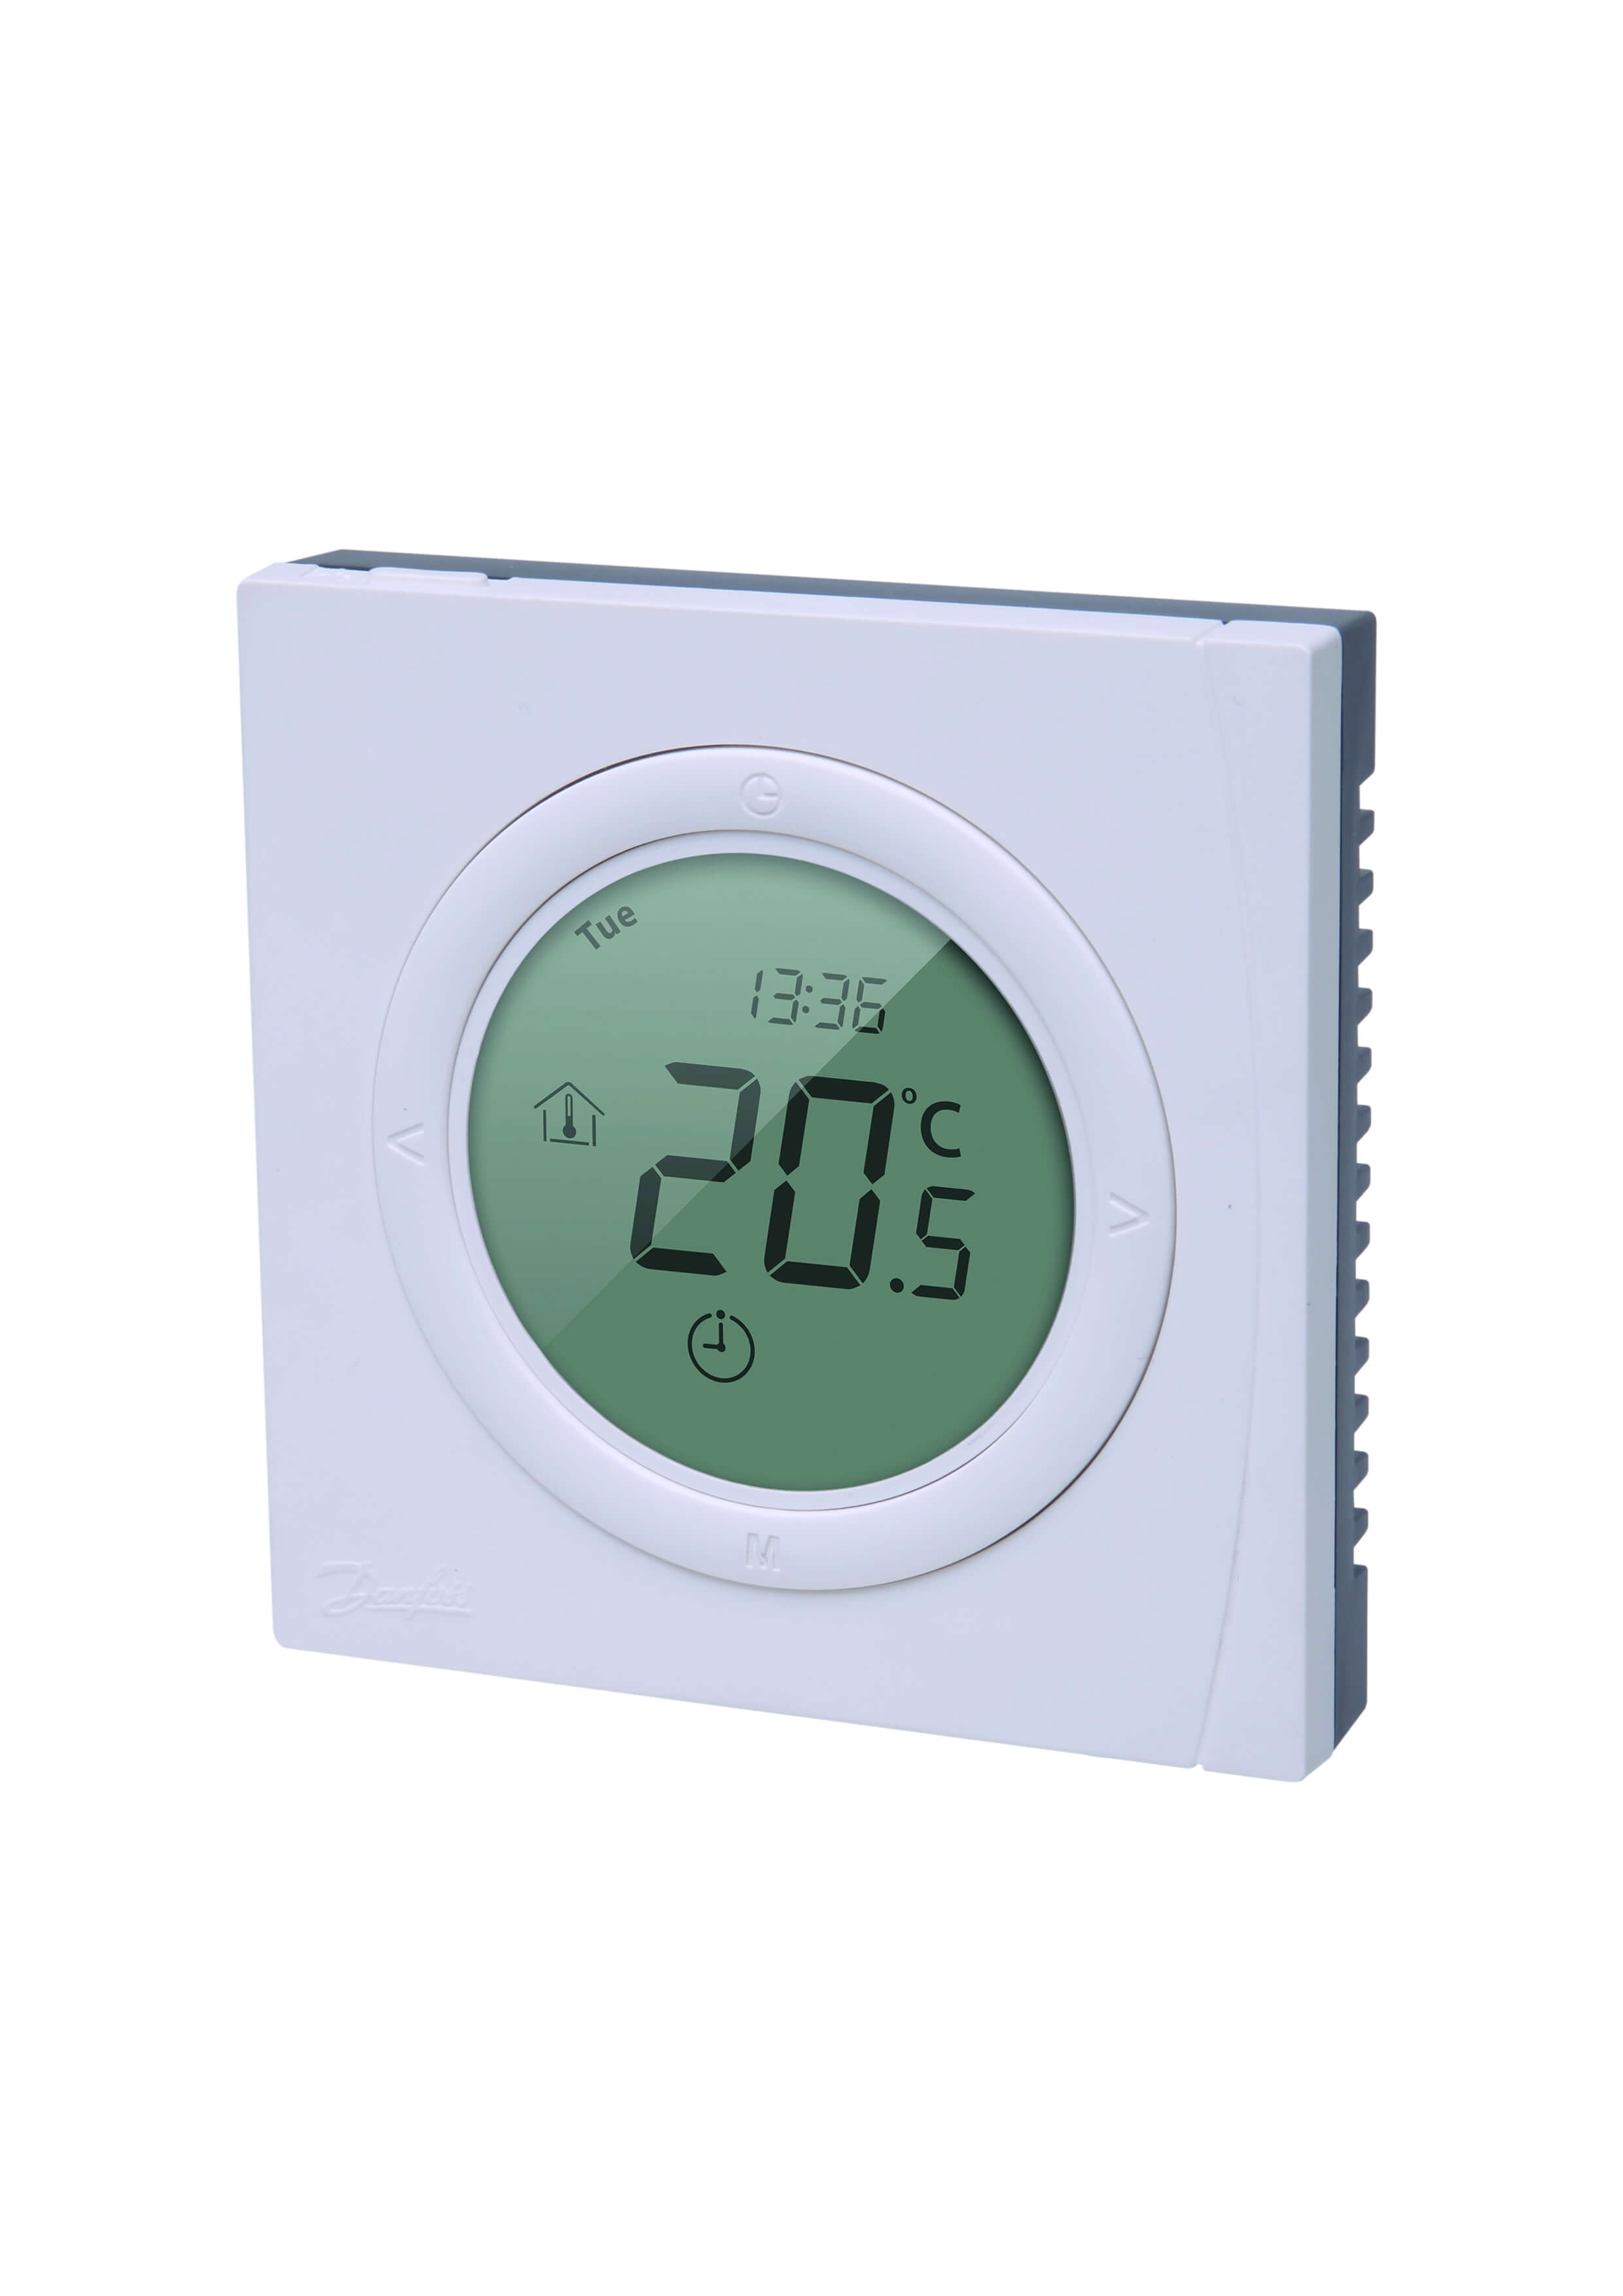 danfoss wt p digital display programmable room thermostat gaia climate solutions. Black Bedroom Furniture Sets. Home Design Ideas